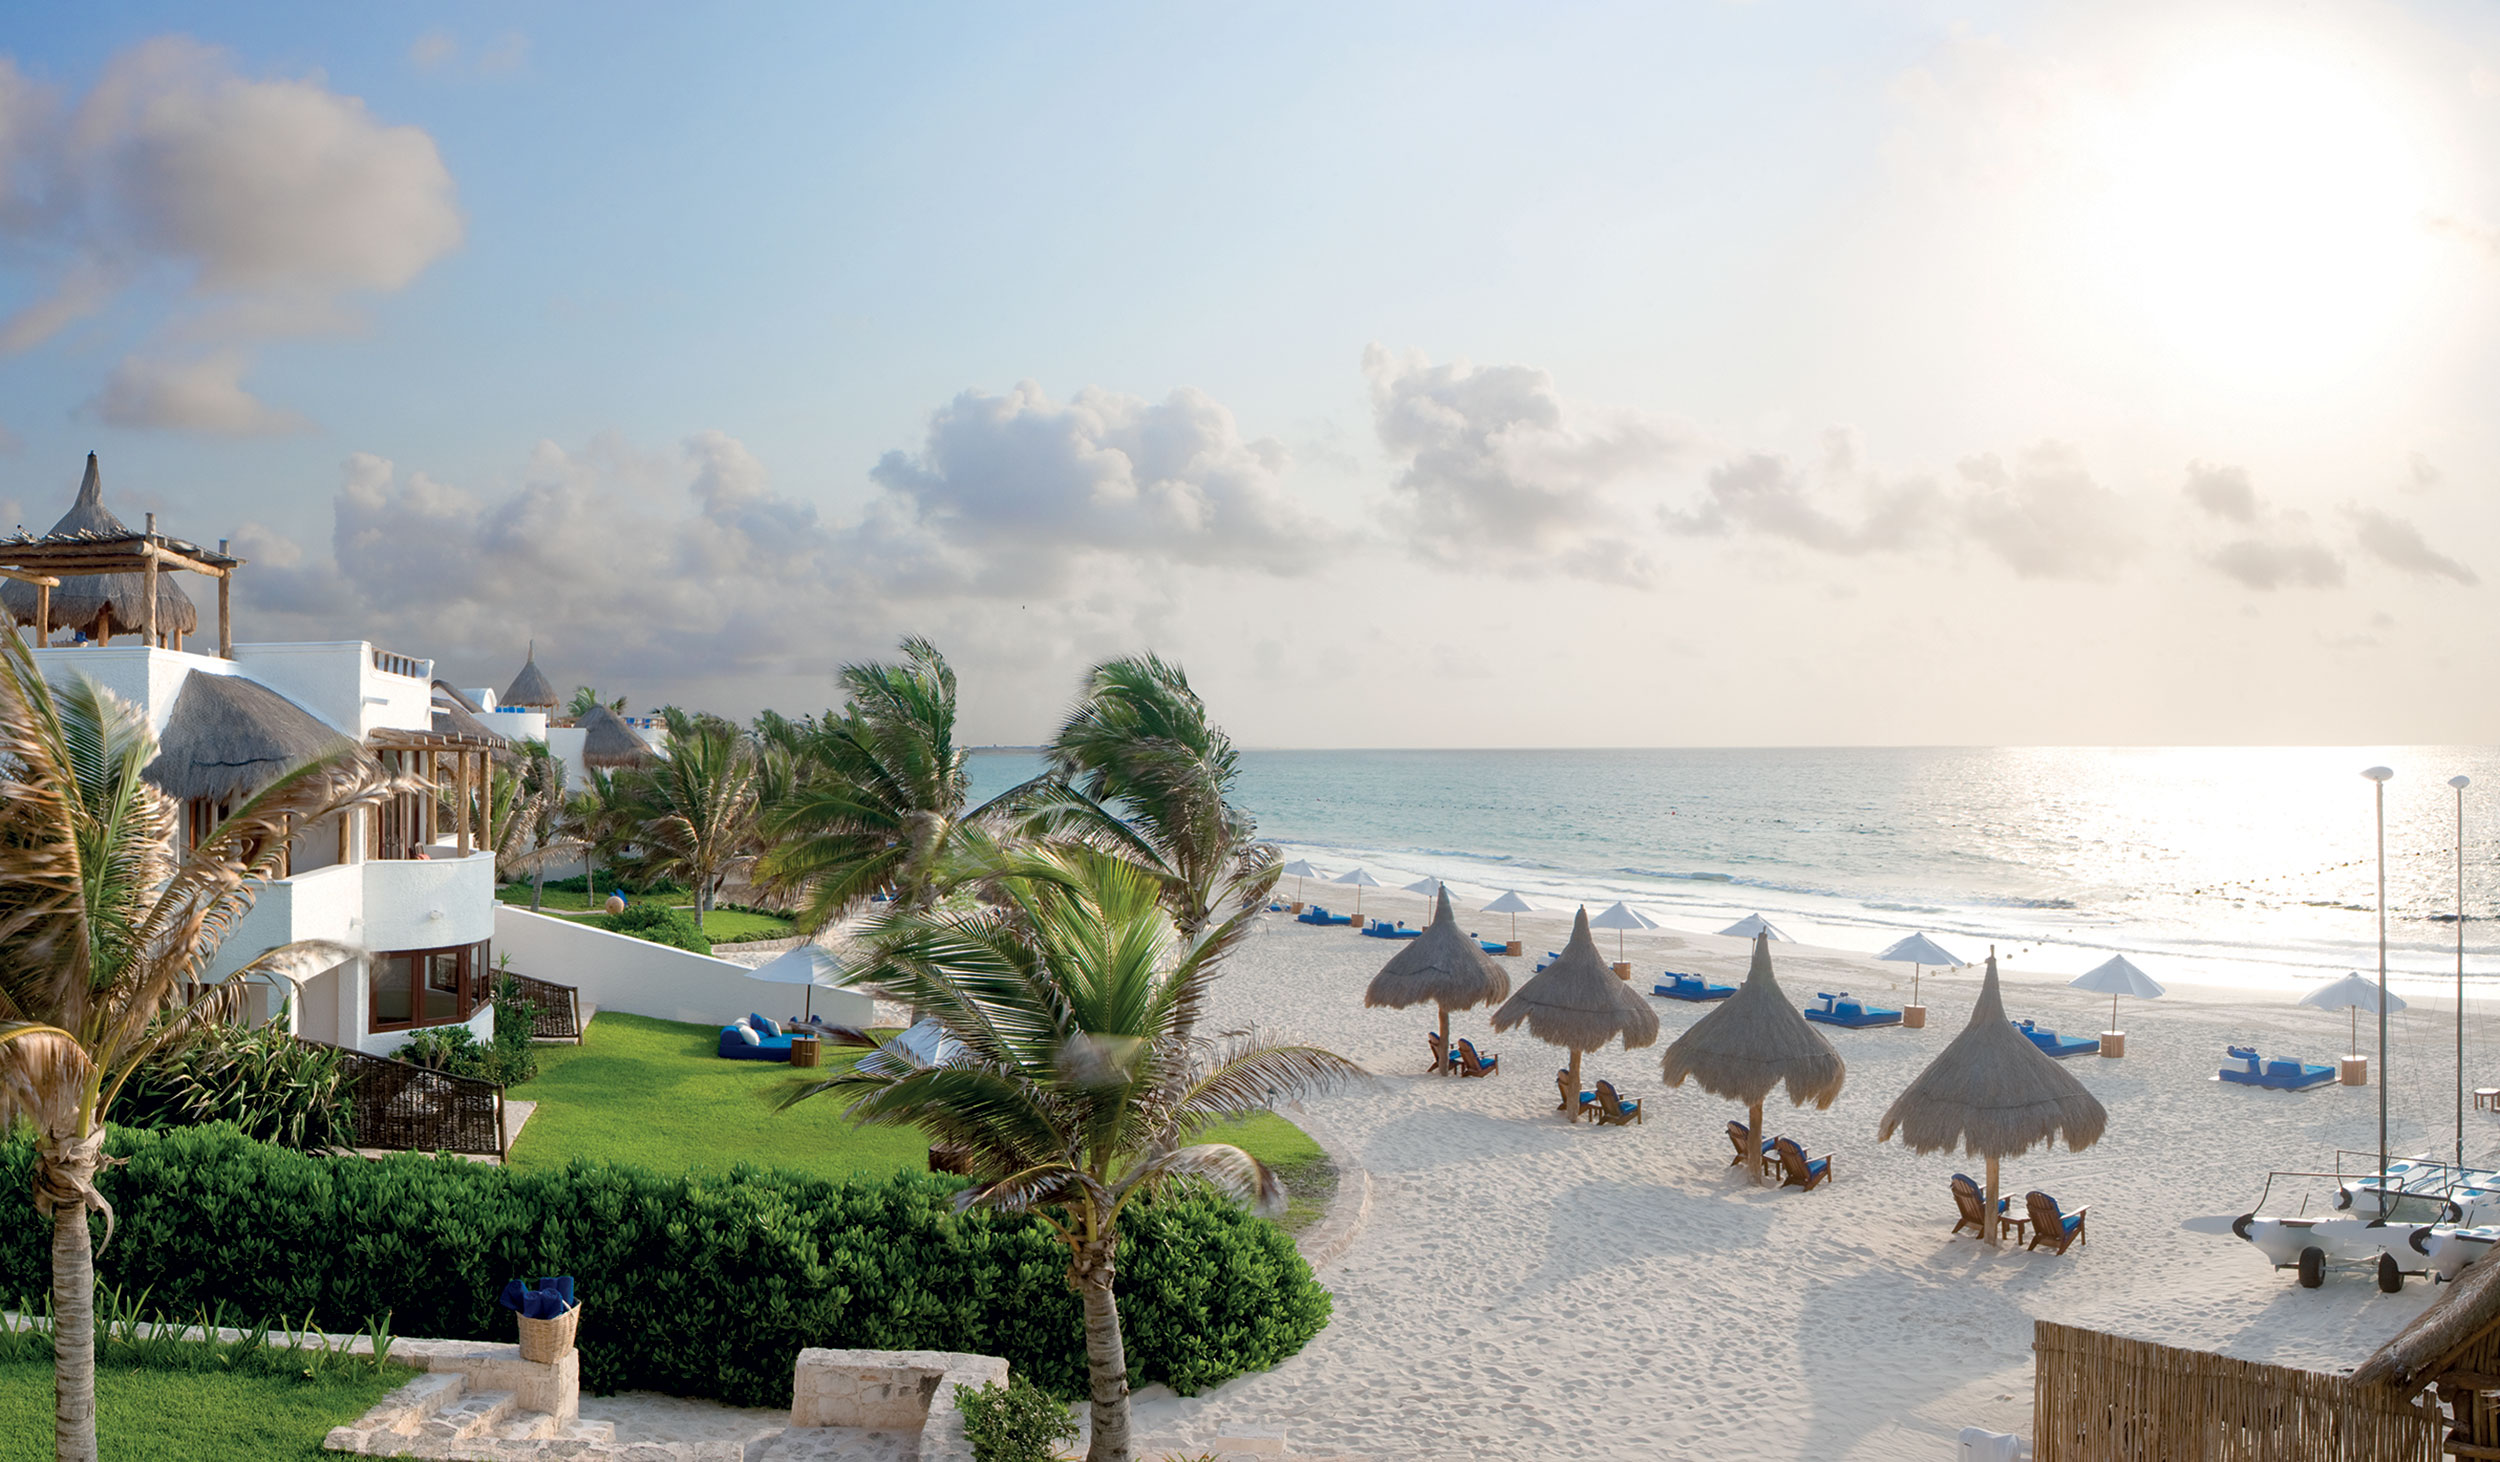 Beach view of umbrellas and loungers on the beach at sunset, Belmond Maroma